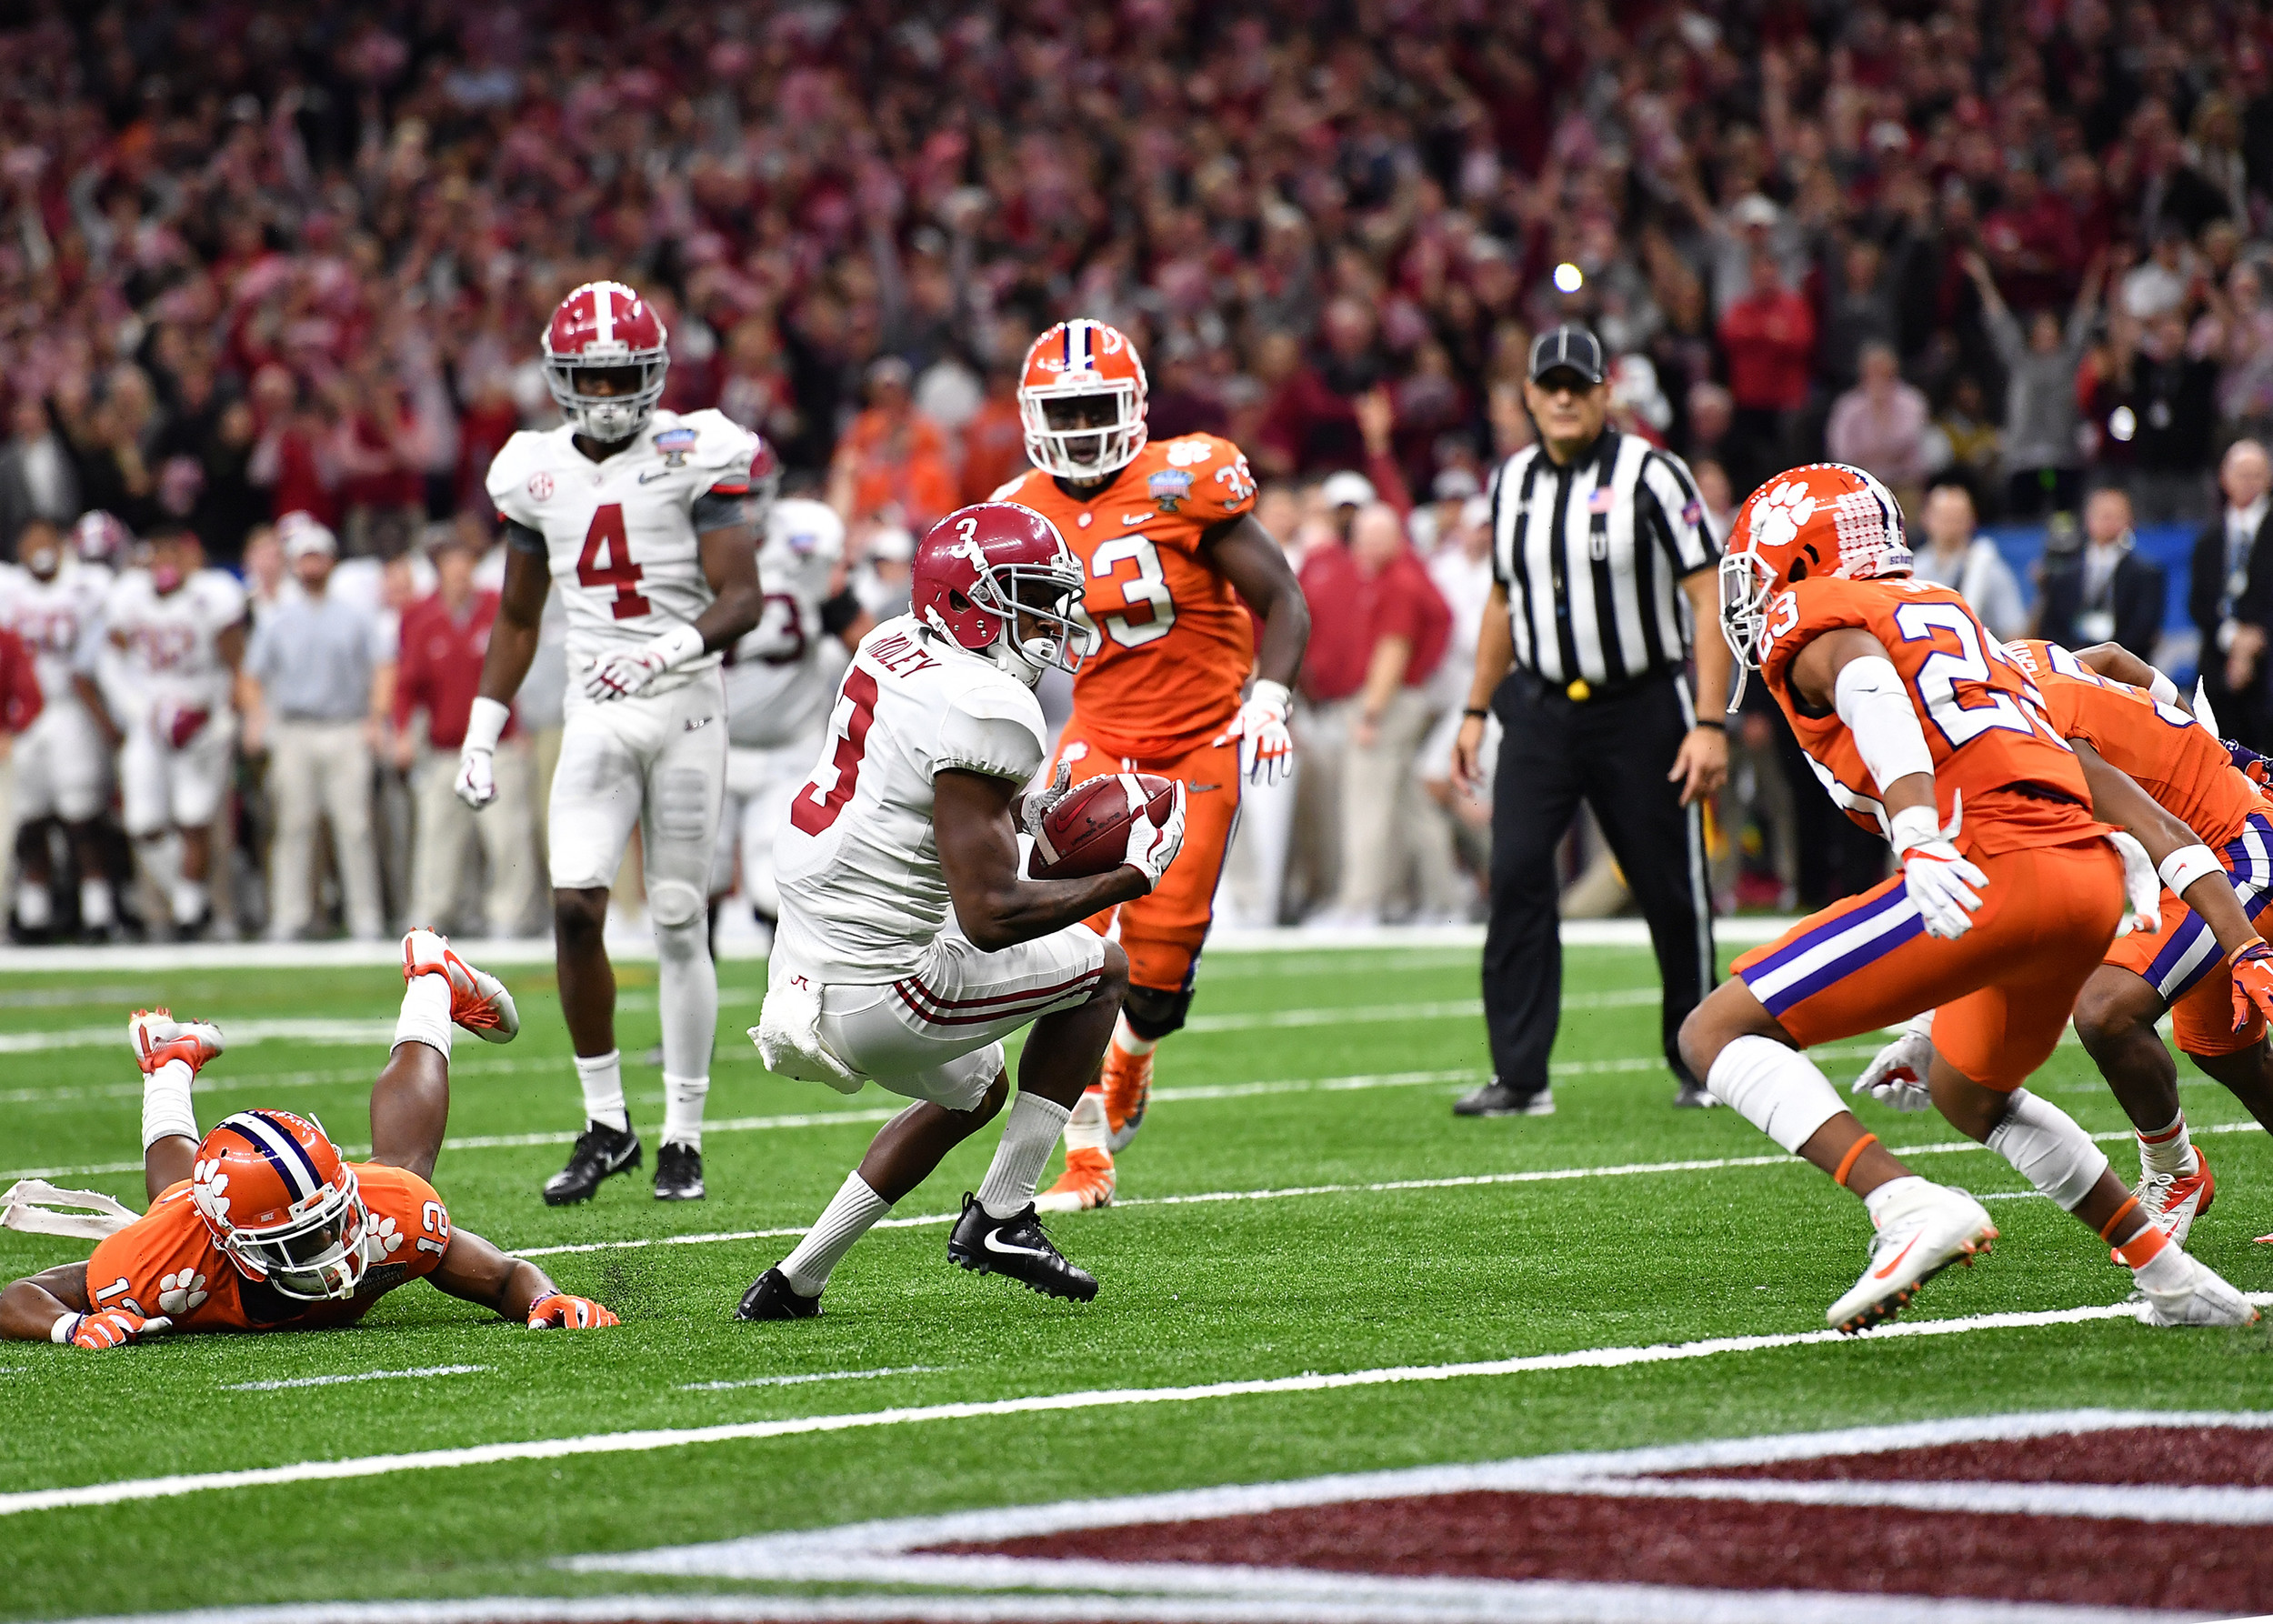 Alabama Crimson Tide wide receiver Calvin Ridley (3) looks for an opening to the end zone in the second half of the 2018 AllState Sugar Bowl on Jan. 1, 2018, at the Mercedes-Benz SuperDome in New Orleans, La. Alabama won the game 24-6. (Photo by Lee Walls)